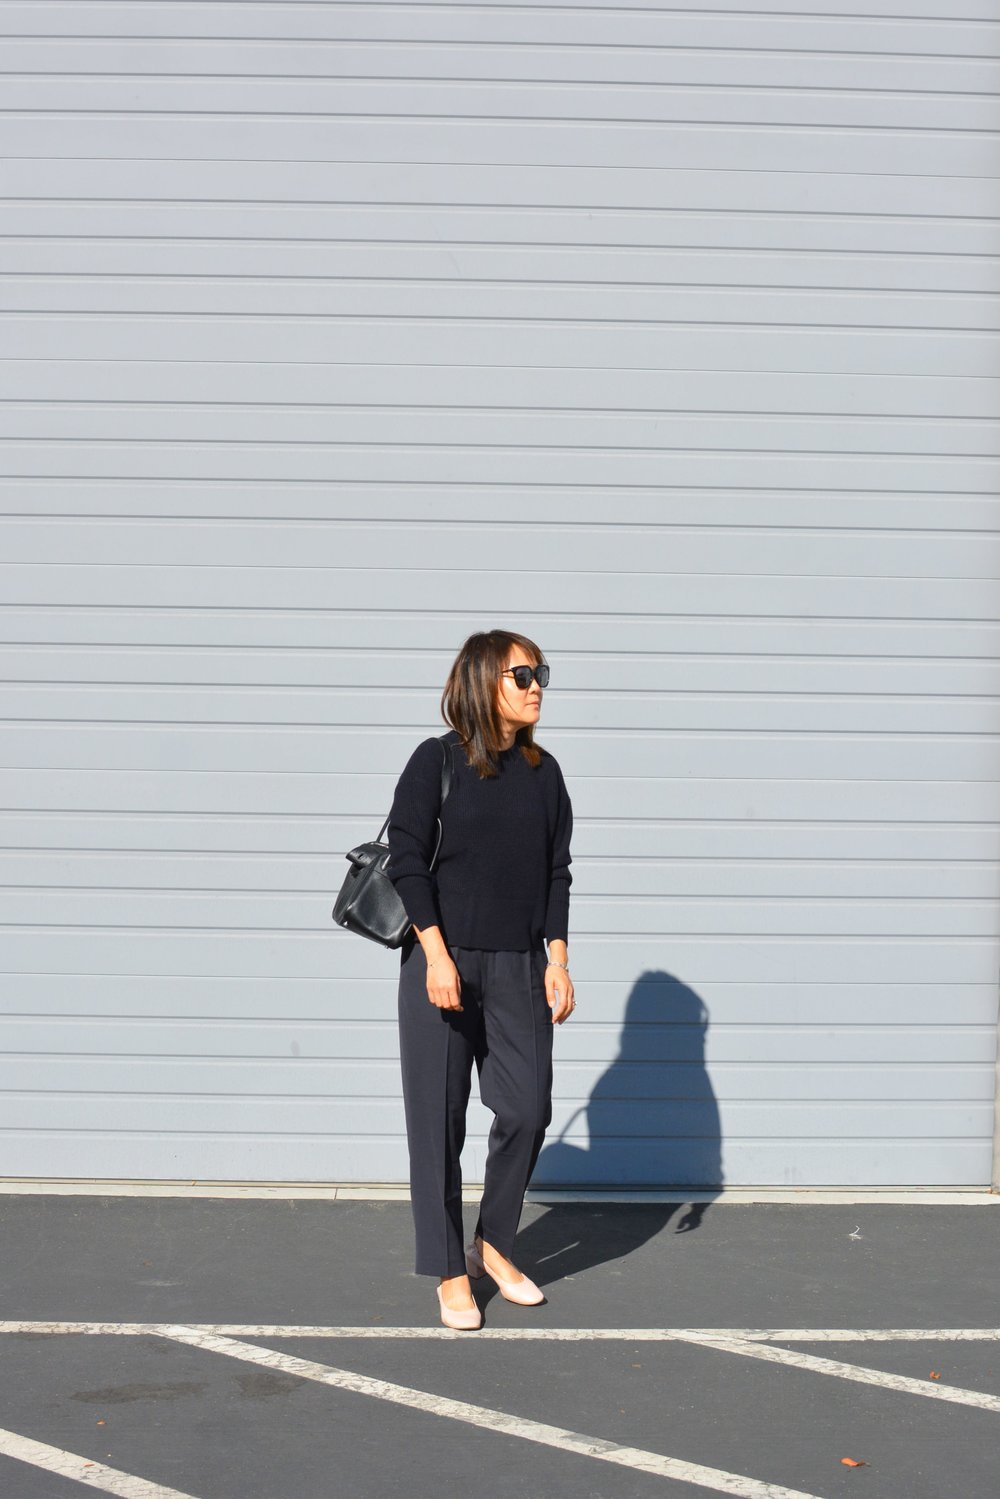 Everlane Review The Italian GoWeave Easy Pant (3 of 3)-min.jpg